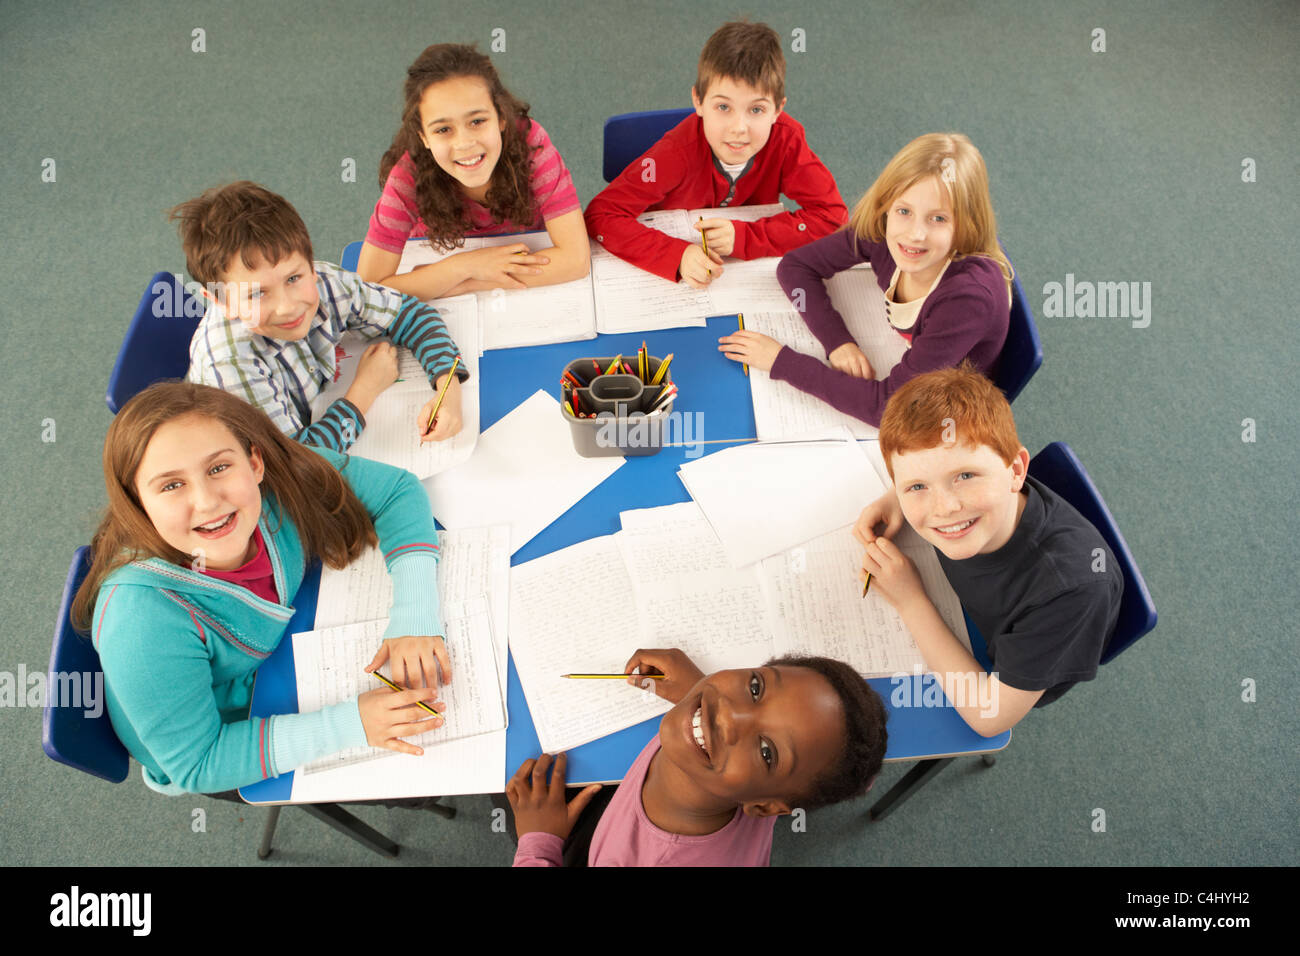 Overhead View Of Schoolchildren Working Together At Desk - Stock Image